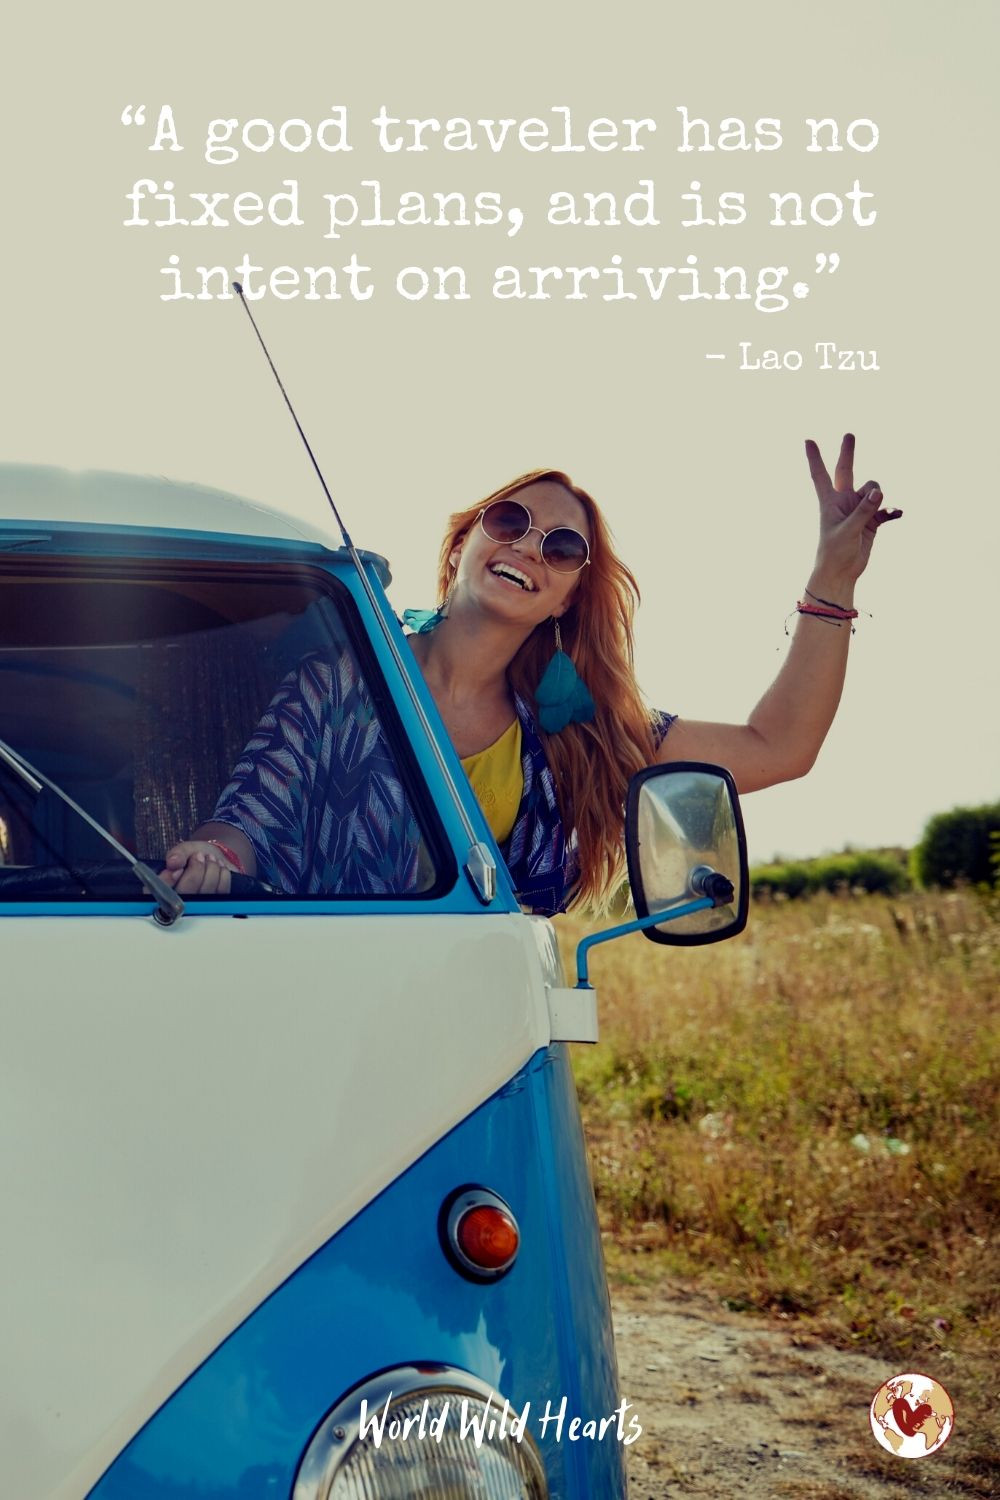 Good travel quote for wanderlust